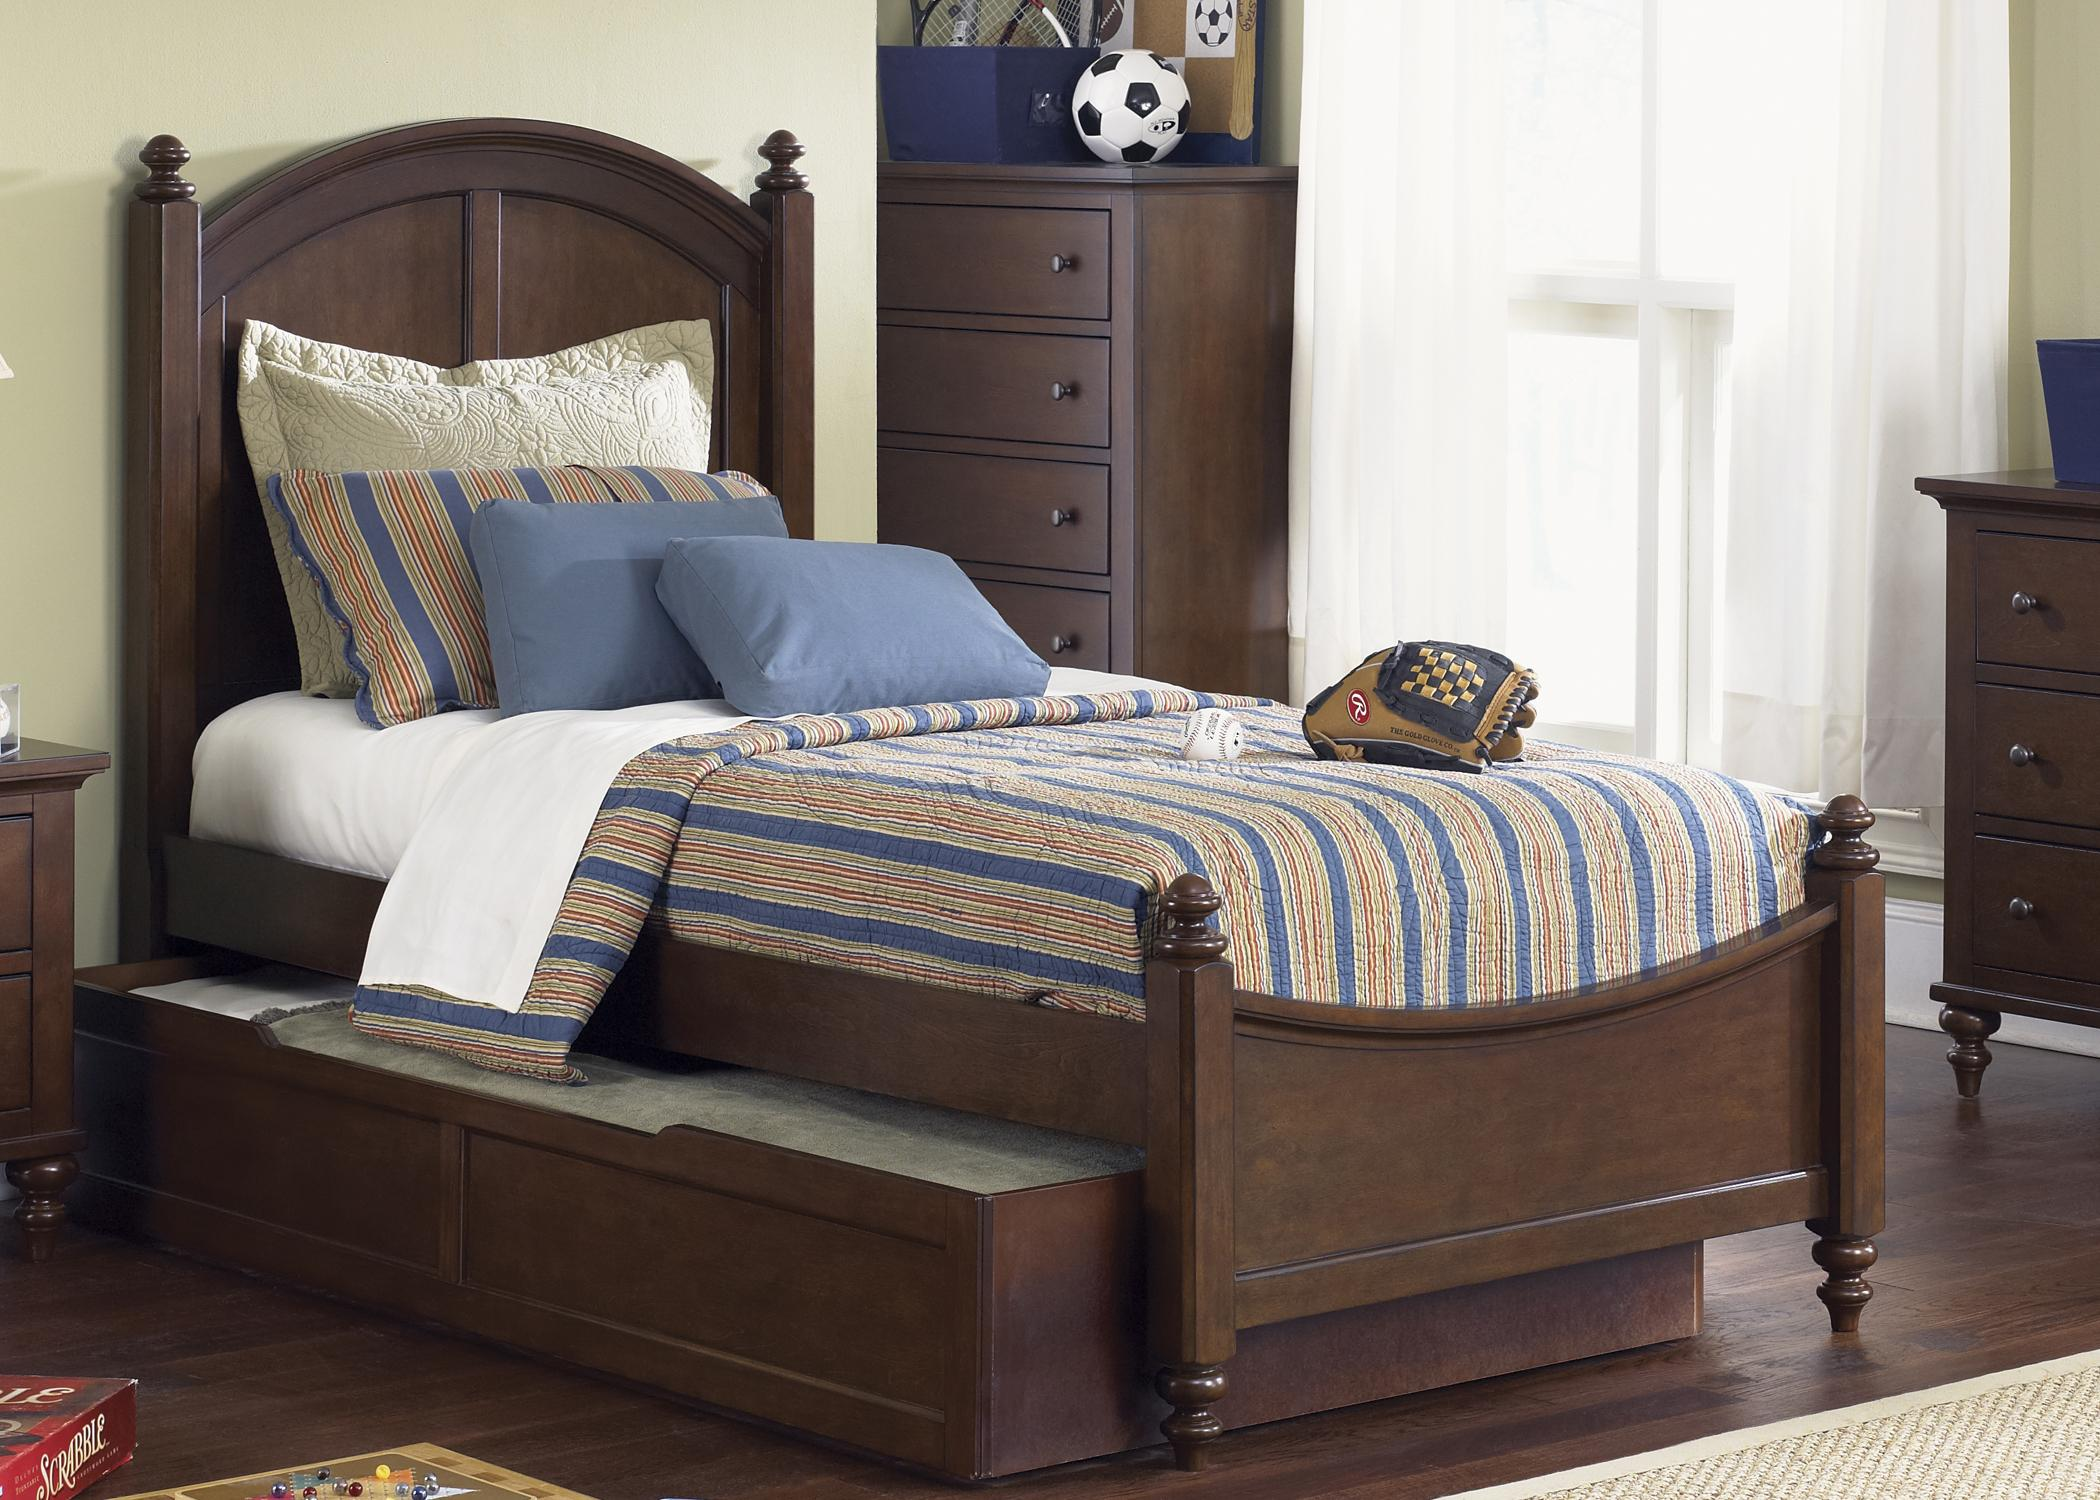 full panel bed with trundleliberty furniture | wolf